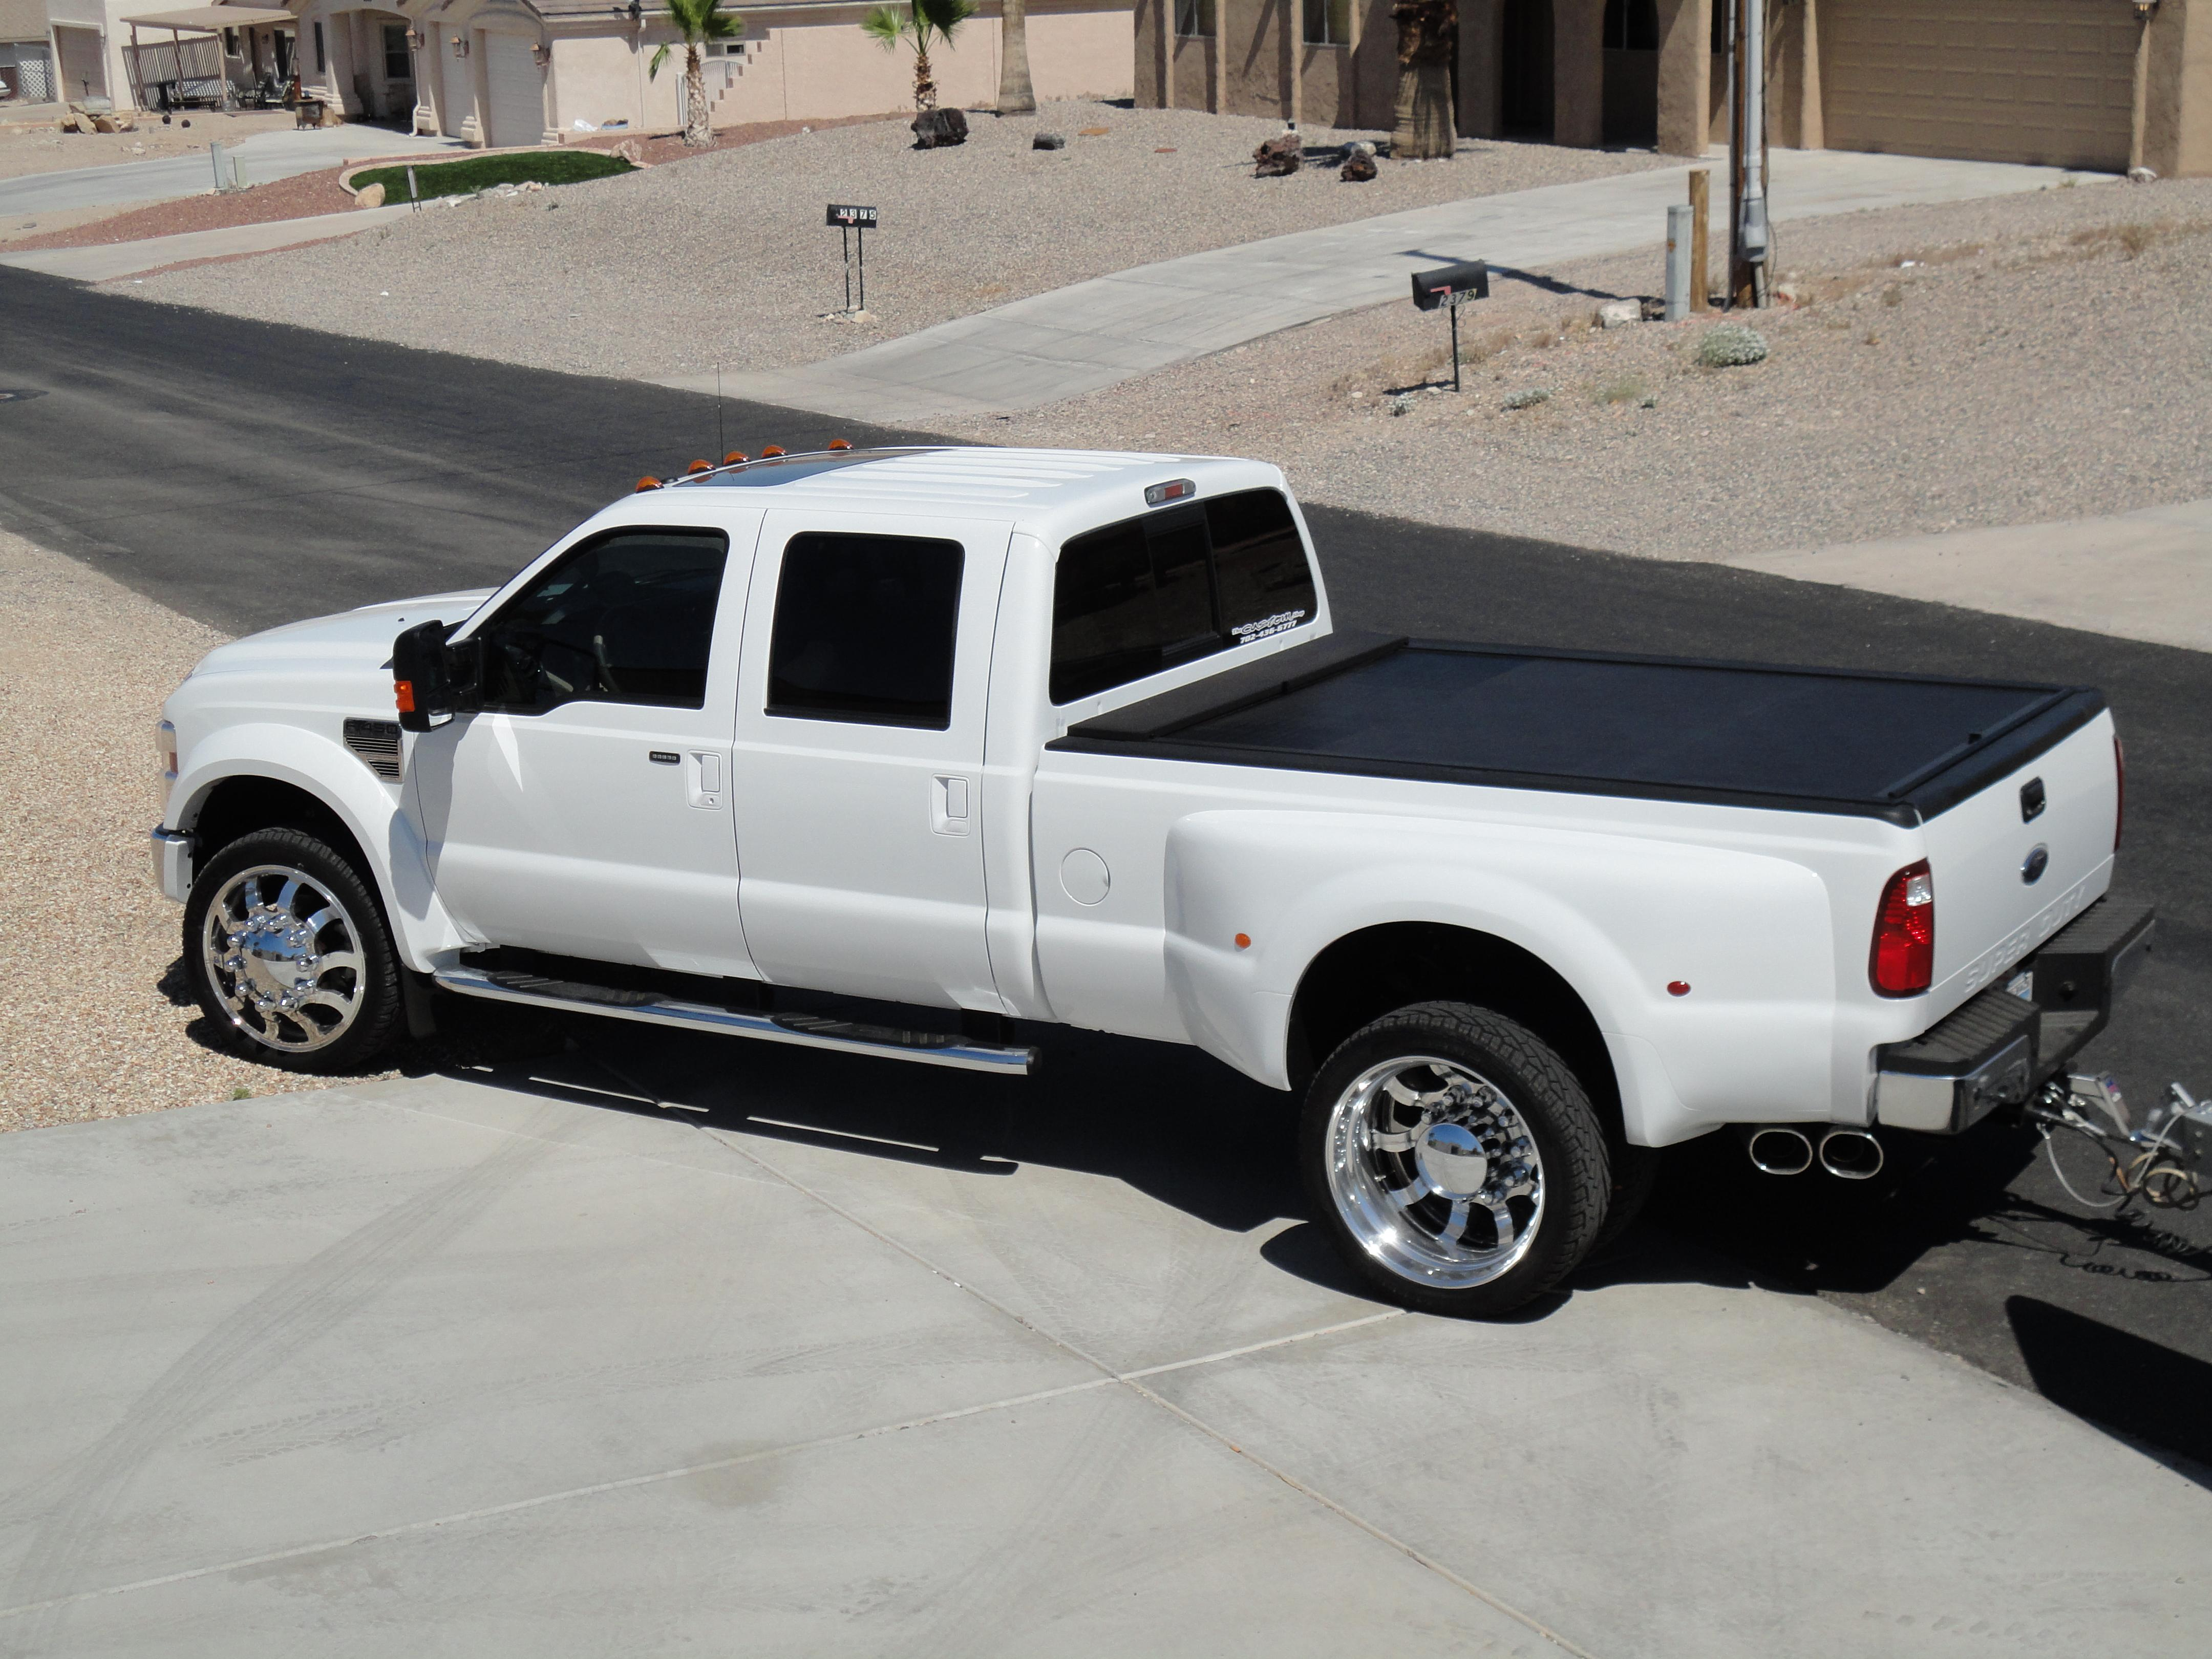 Thecustomshop 2010 ford f450 super duty crew cab specs photos modification info at cardomain